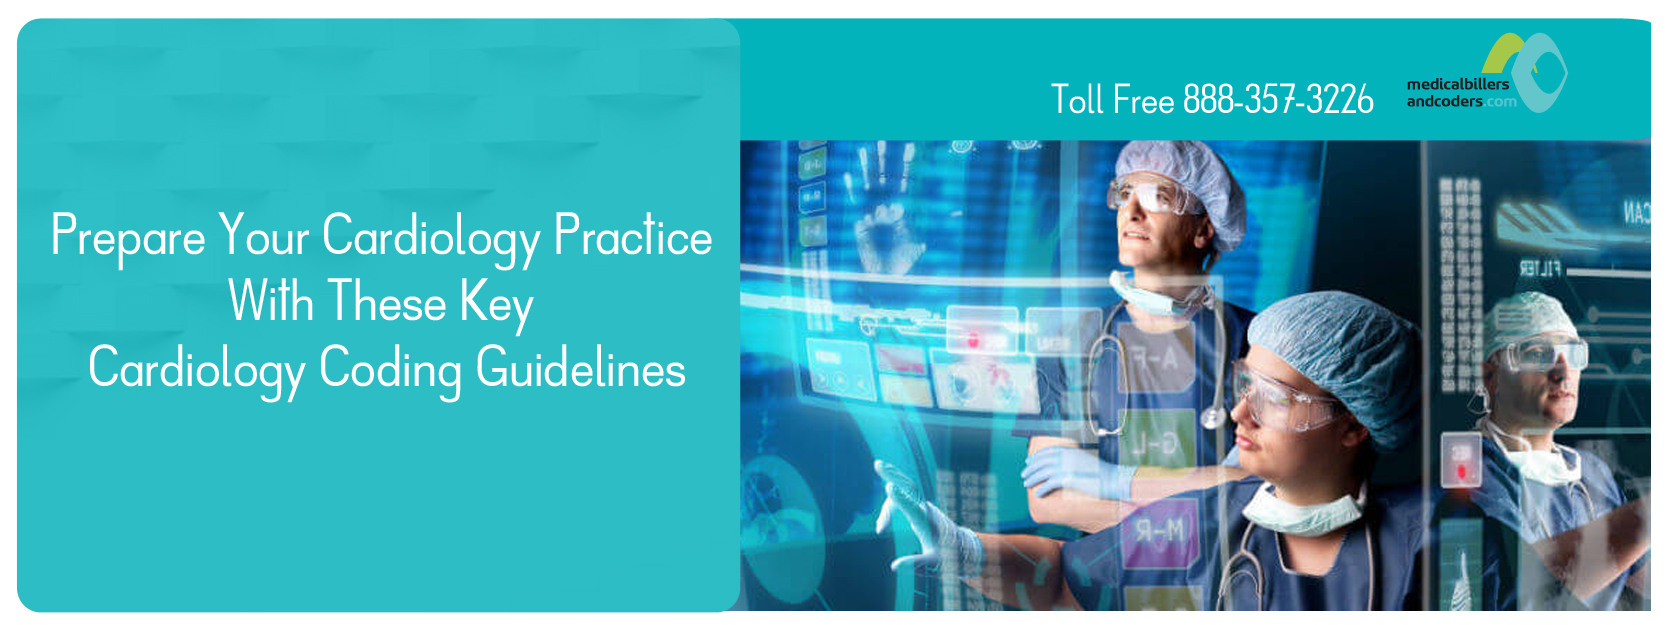 Cardiology Practice with Key Cardiology Coding Guidelines